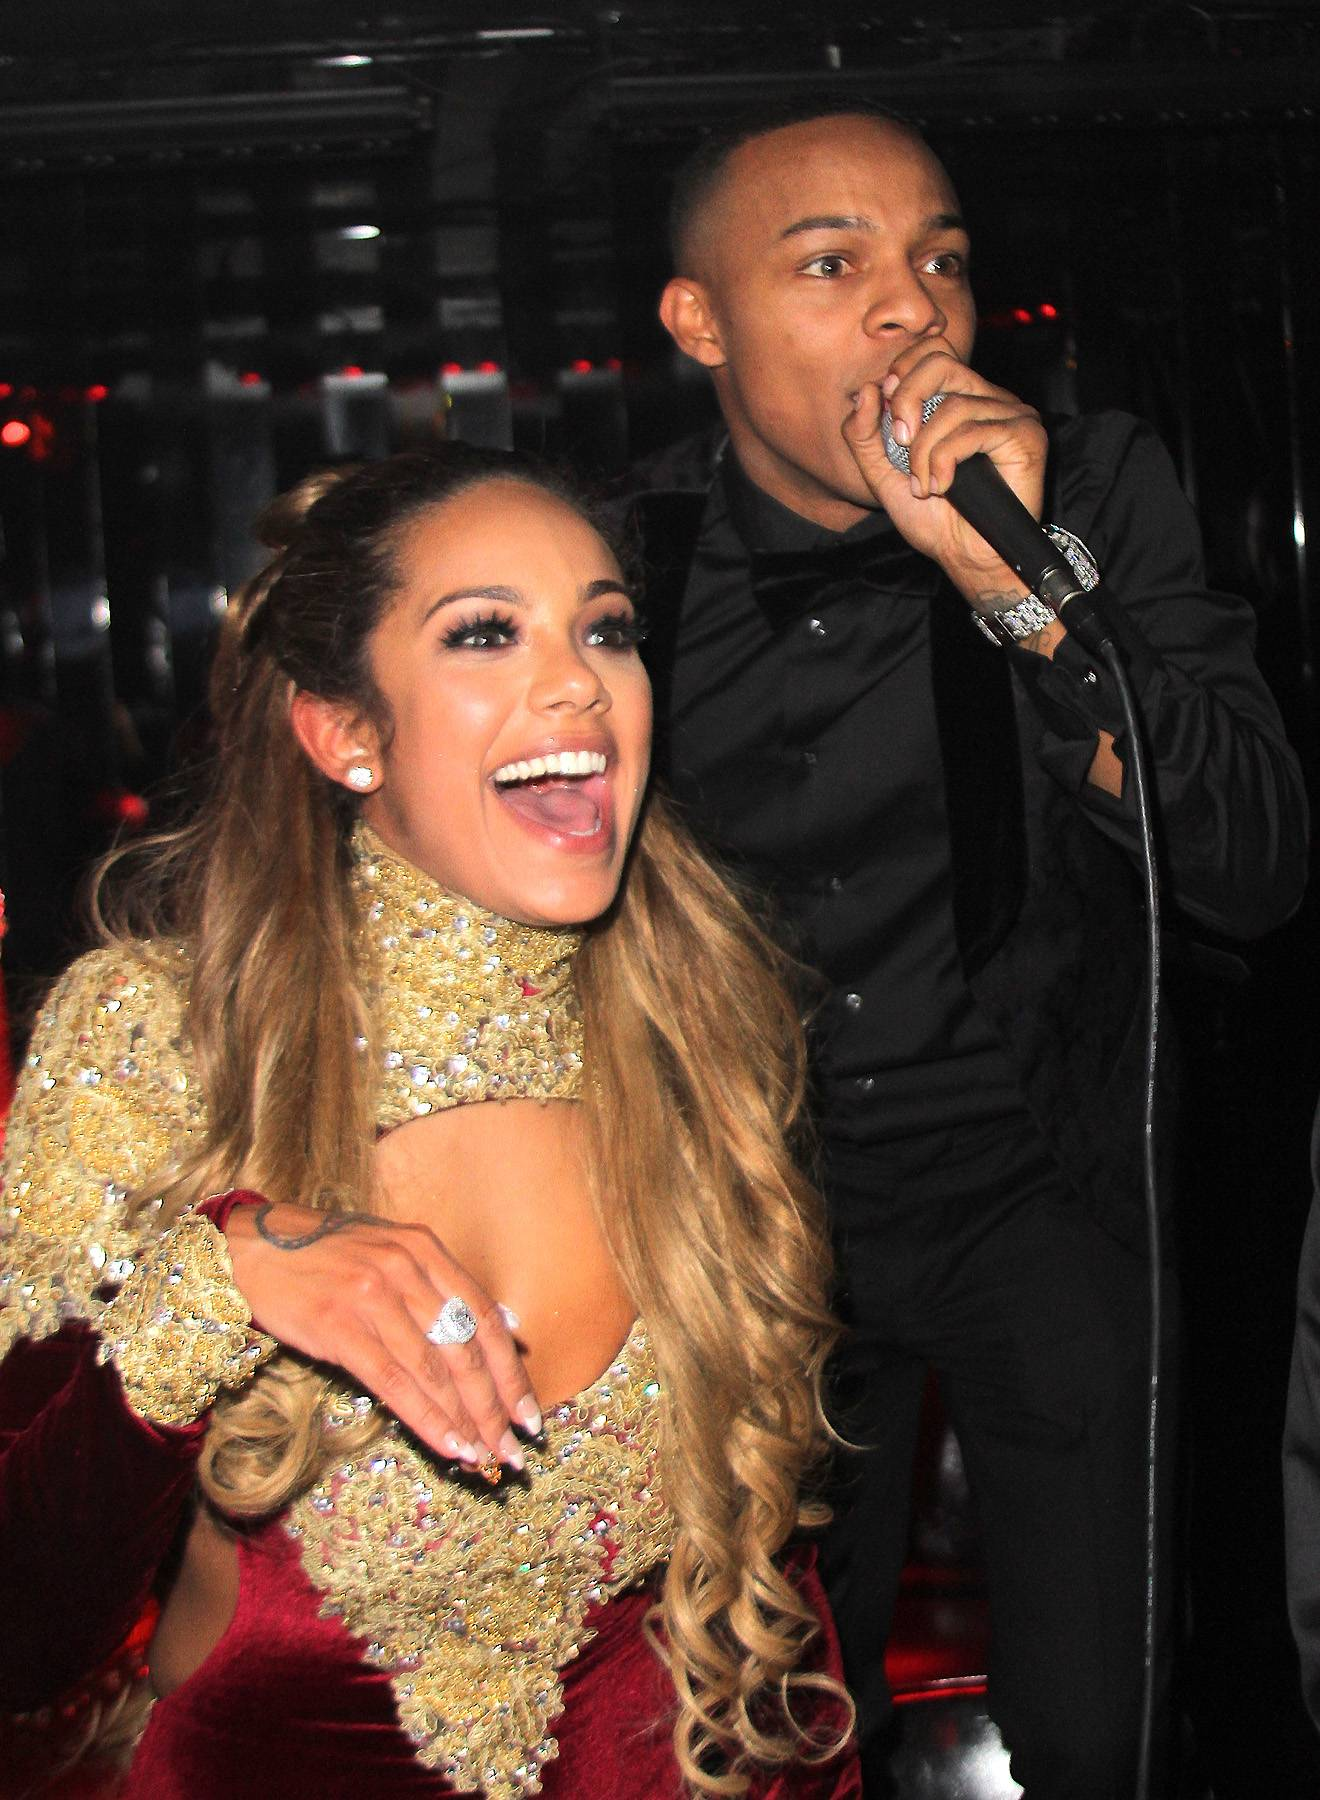 Erica Mena Celebrates Birthday - Shad Moss (Bow Wow) and fiancee Erica Mena celebrated her birthday in New York City last night. Mena was wearing a red velvet dress, had a giant red cake and got kisses from her man as she and friends celebrated. Sounds like the ideal birthday. (Photo: We Dem Boyz/Splash News)